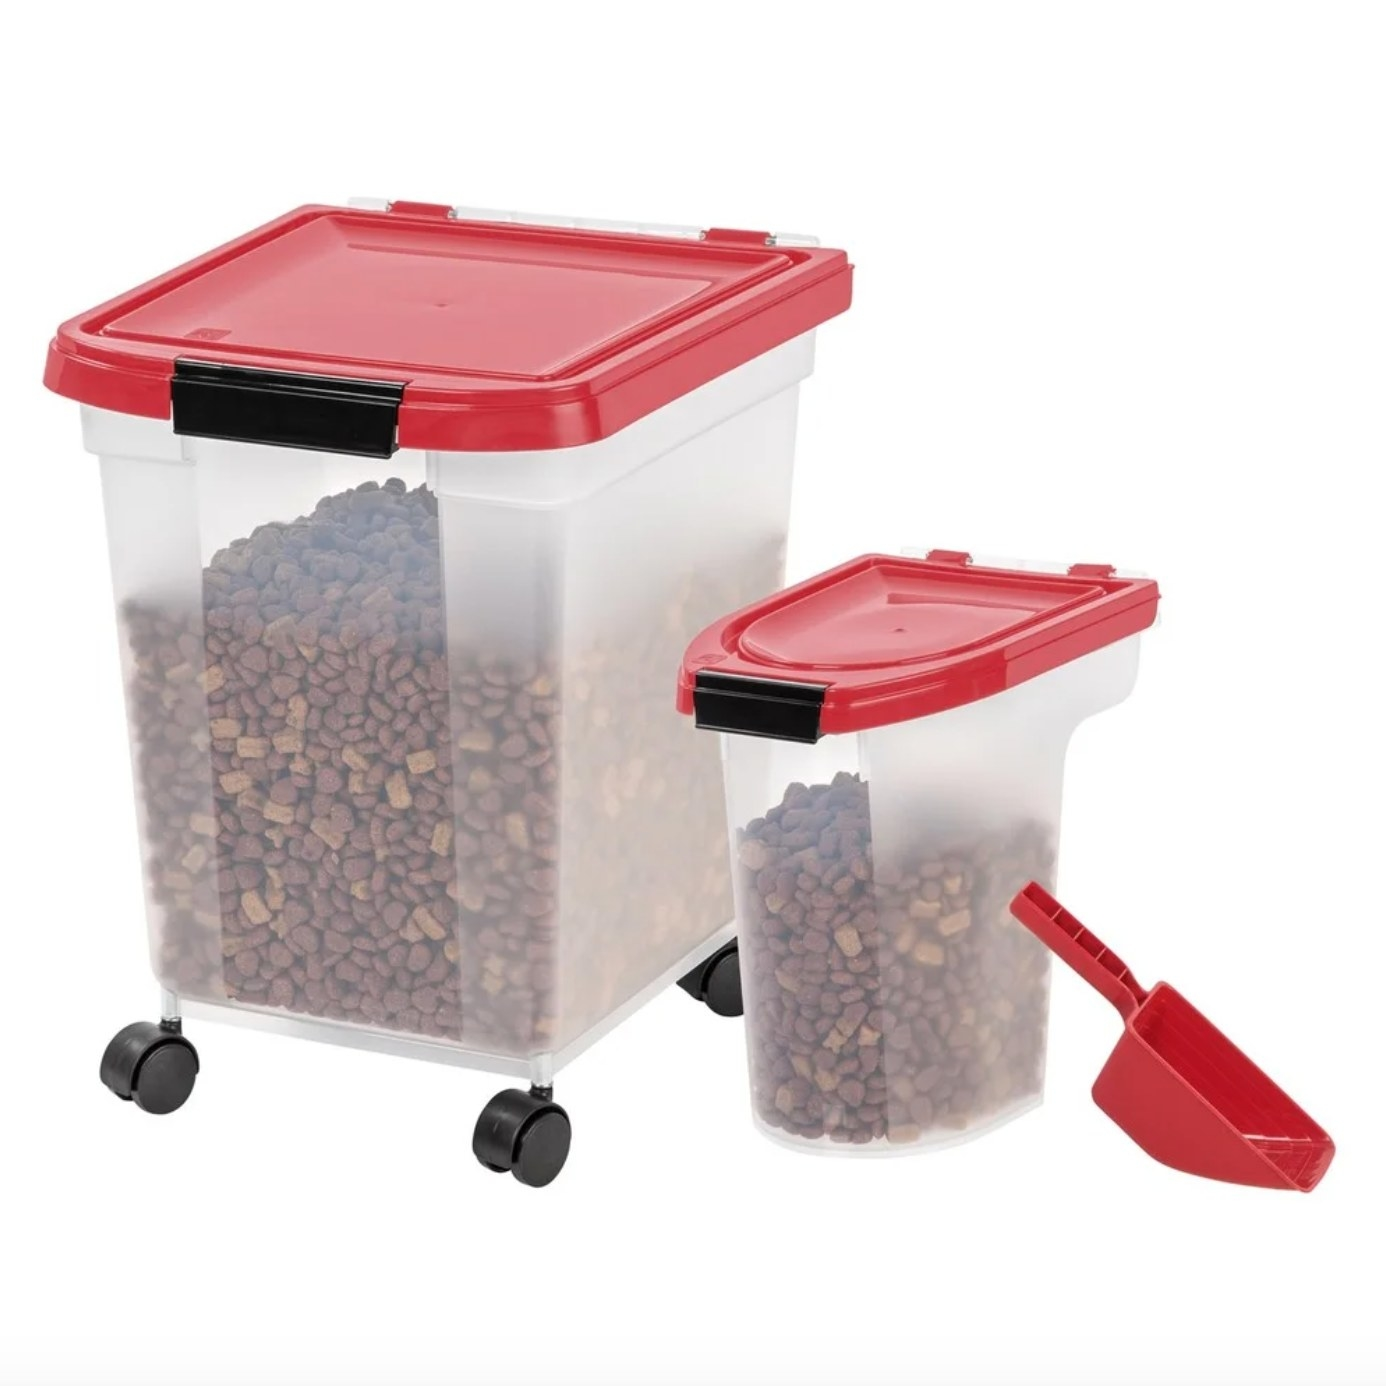 The two storage bins and included scoop, one large and one smaller